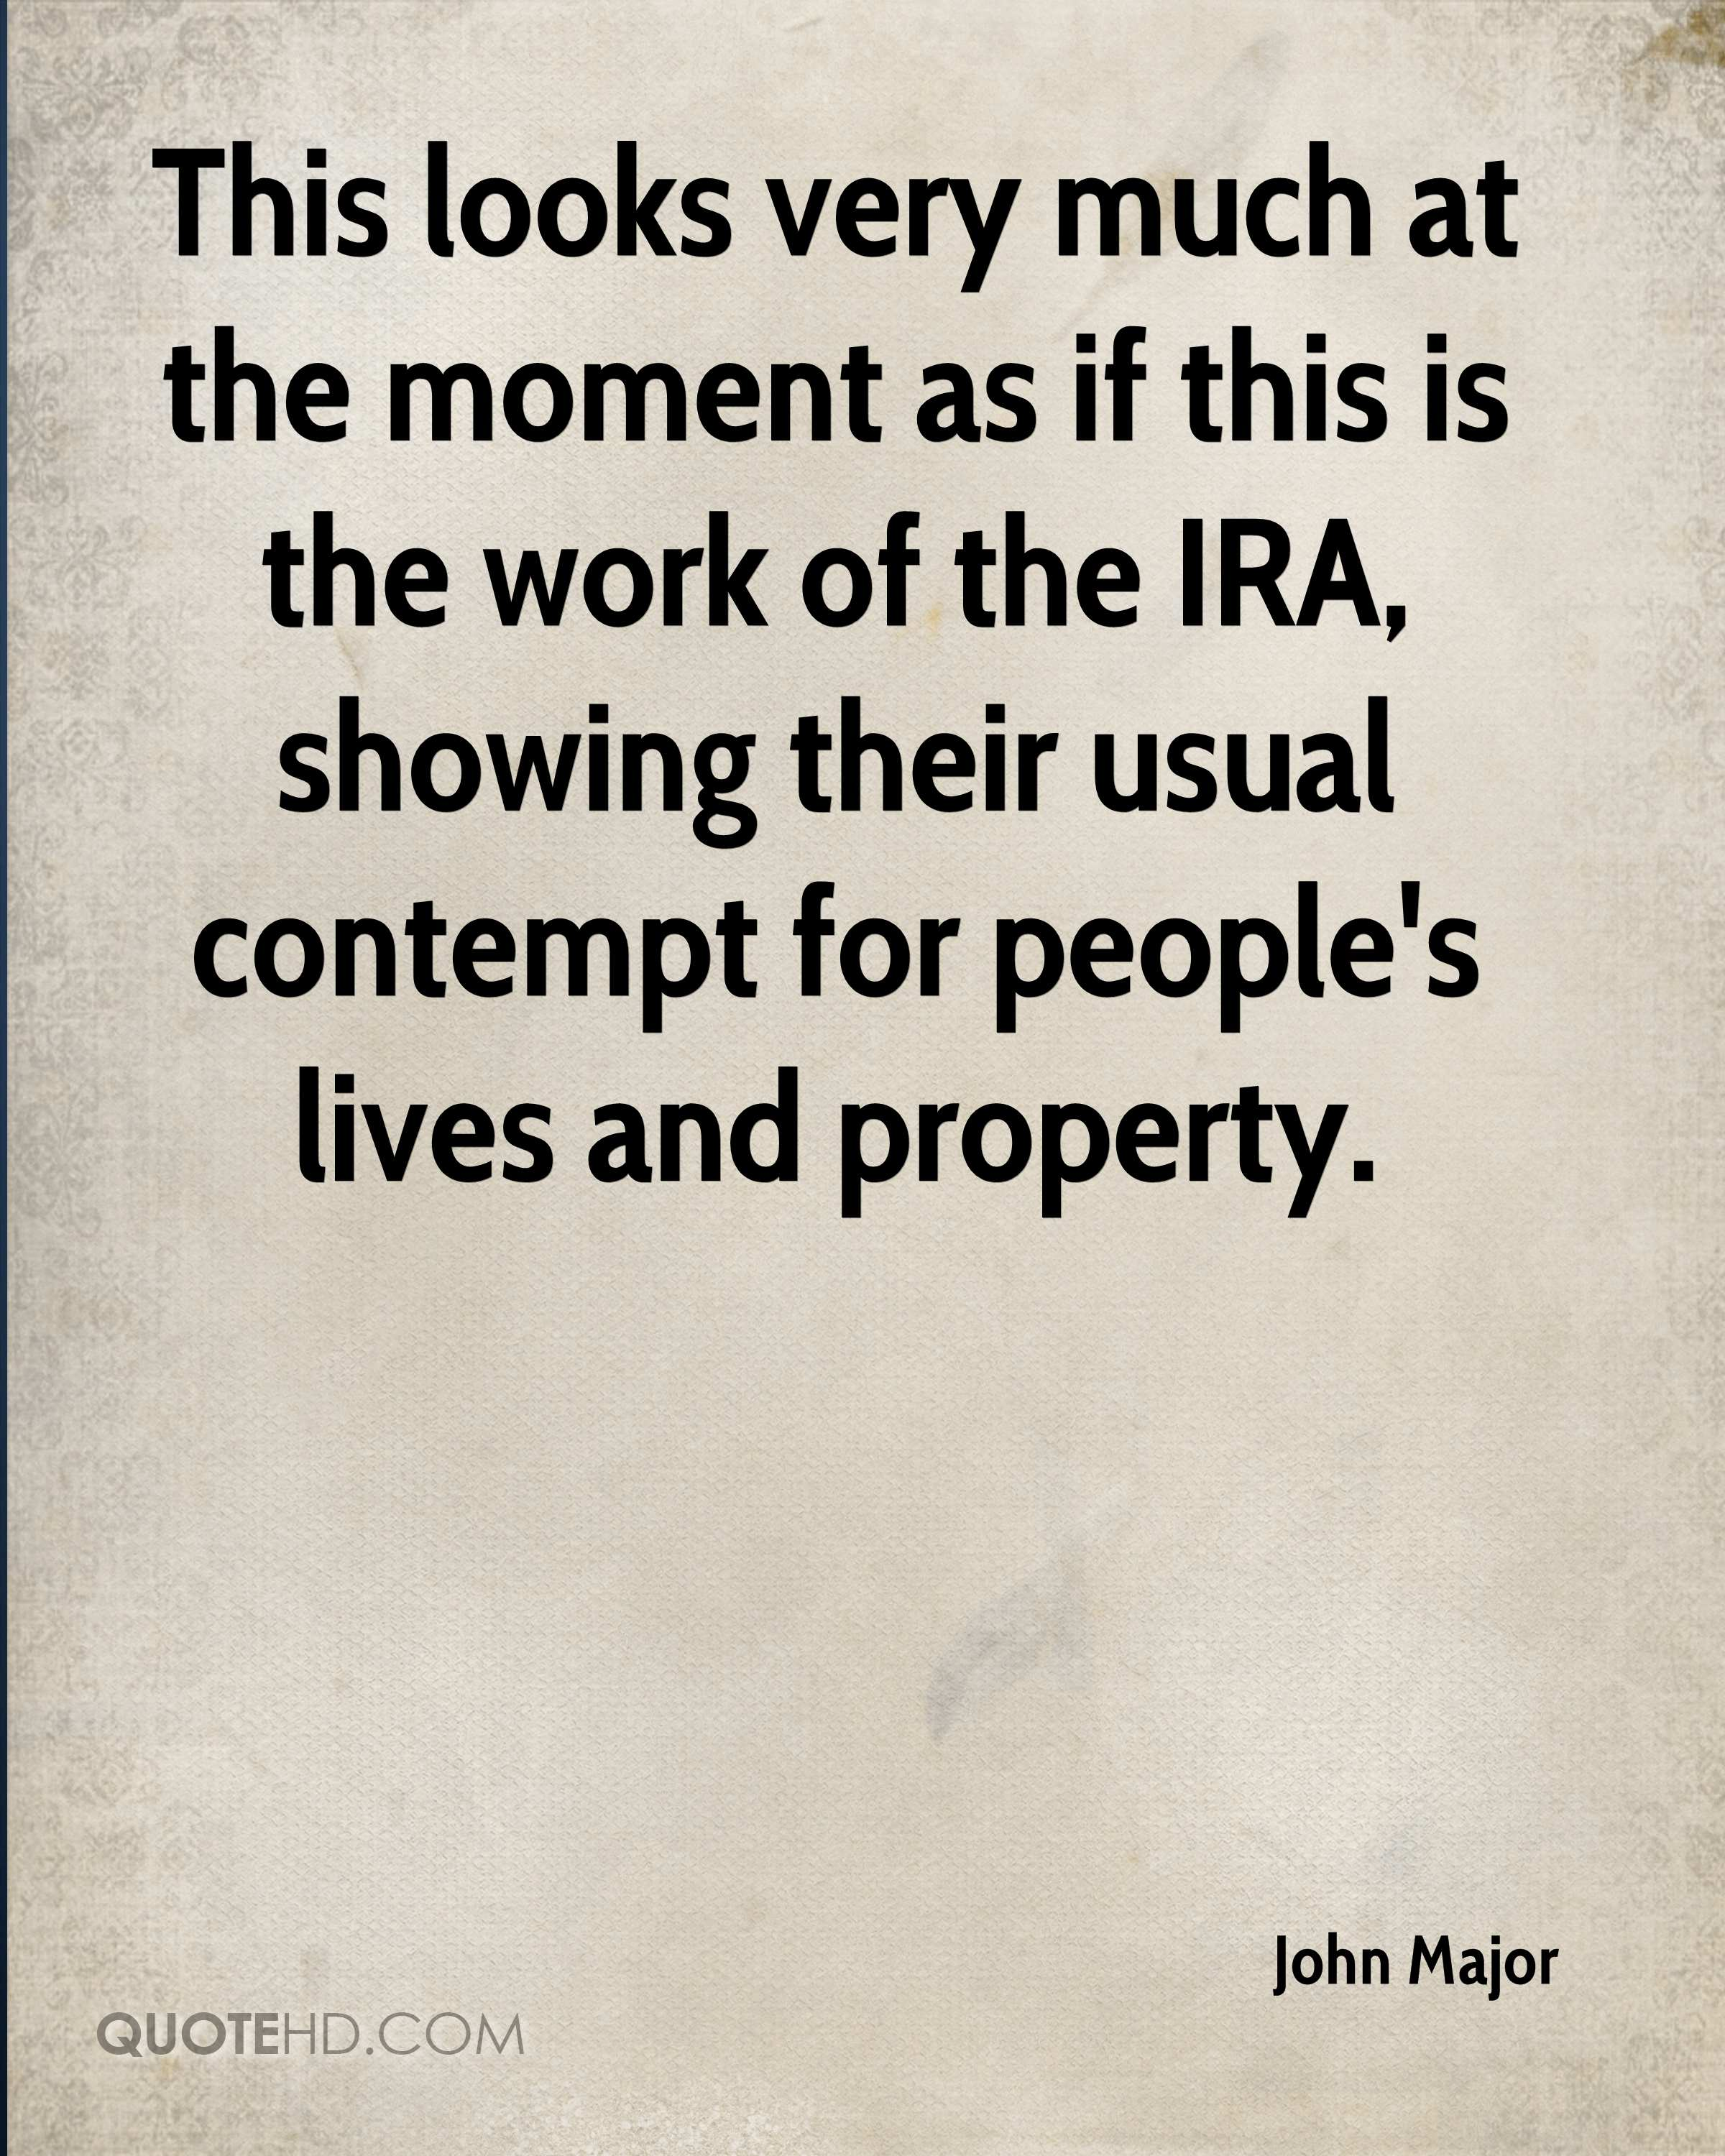 This looks very much at the moment as if this is the work of the IRA, showing their usual contempt for people's lives and property.